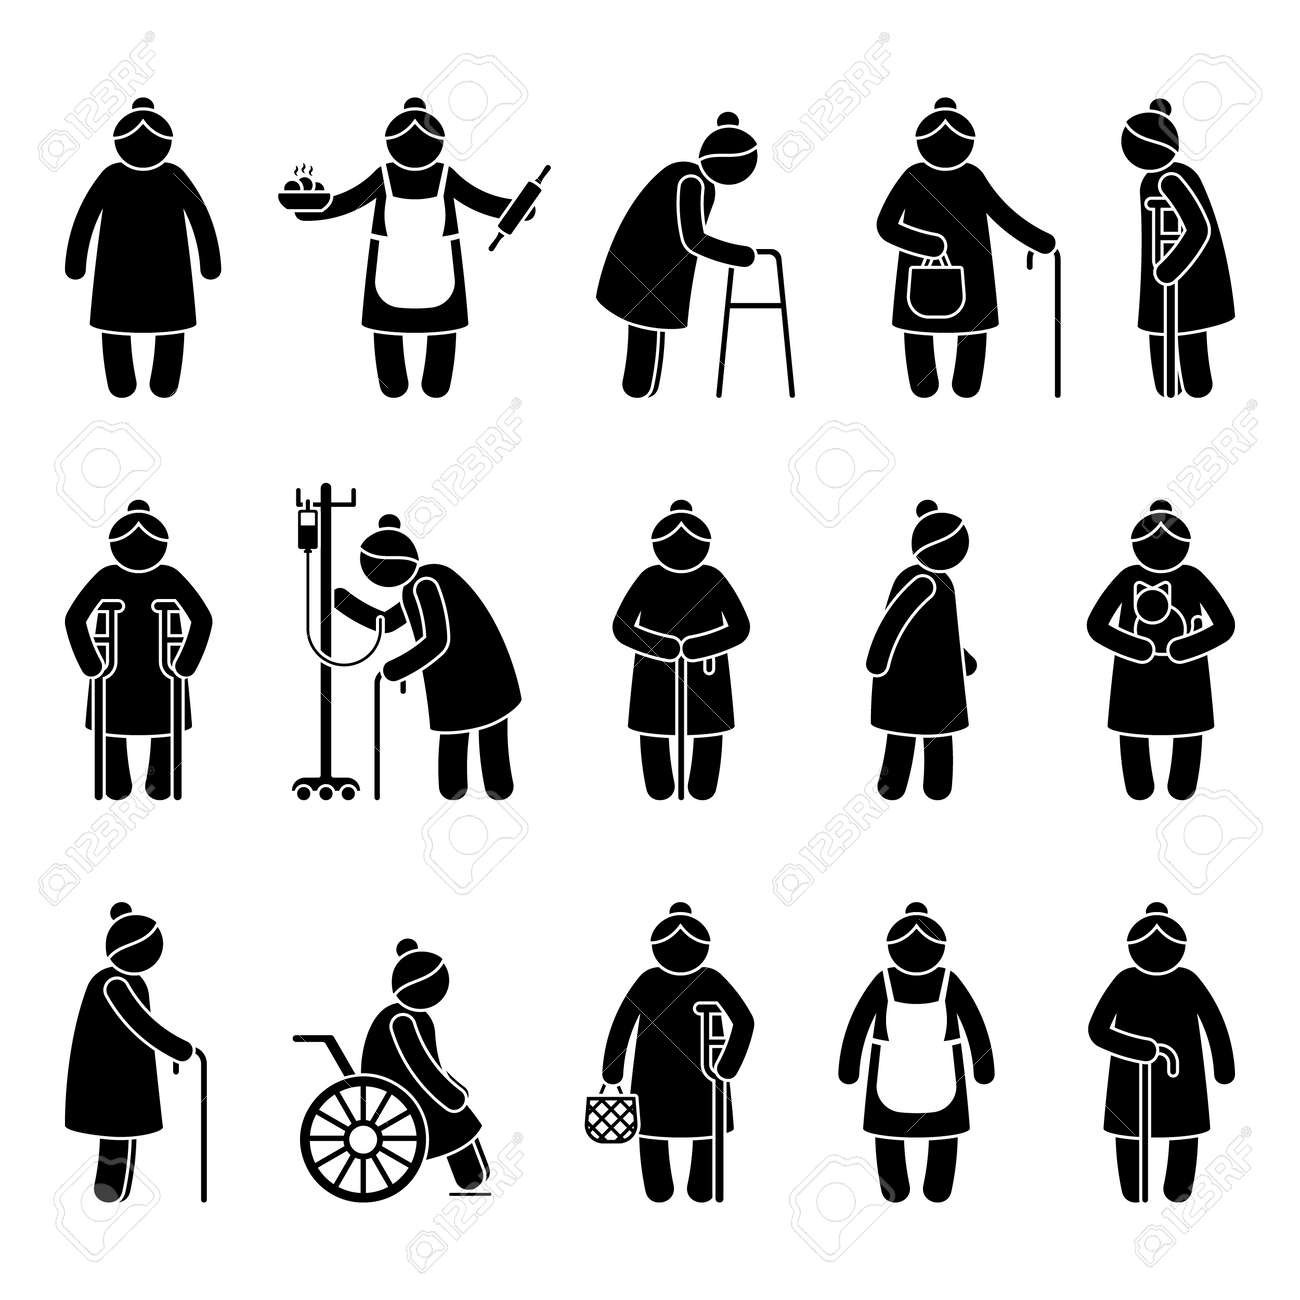 Grandmother stick figure woman walking, standing with walker, cane, crutch, drop counter, cat, sitting on wheelchair vector icon pictogram. Old, aged grandma on white - 169786153